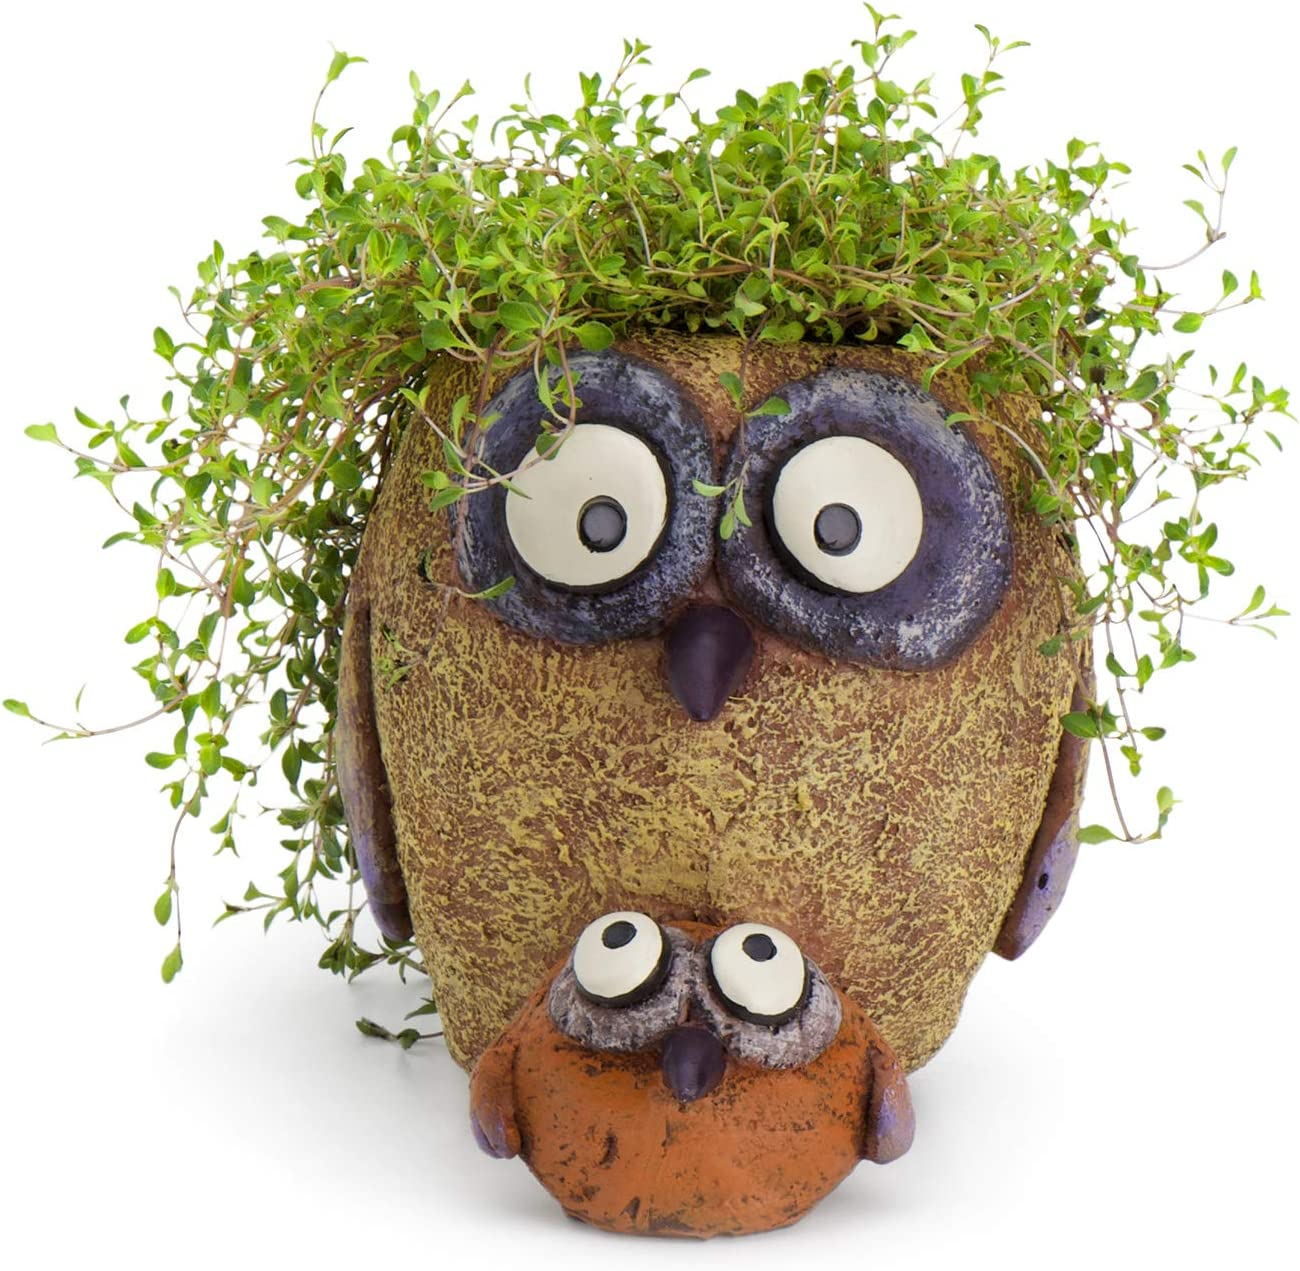 BAB and Sissy Owl Planter, by Blobhouse, Decorative Planter w/Drain Hole Statue for Home Outdoor Garden Lawn & Indoor Art Accent Sculpture